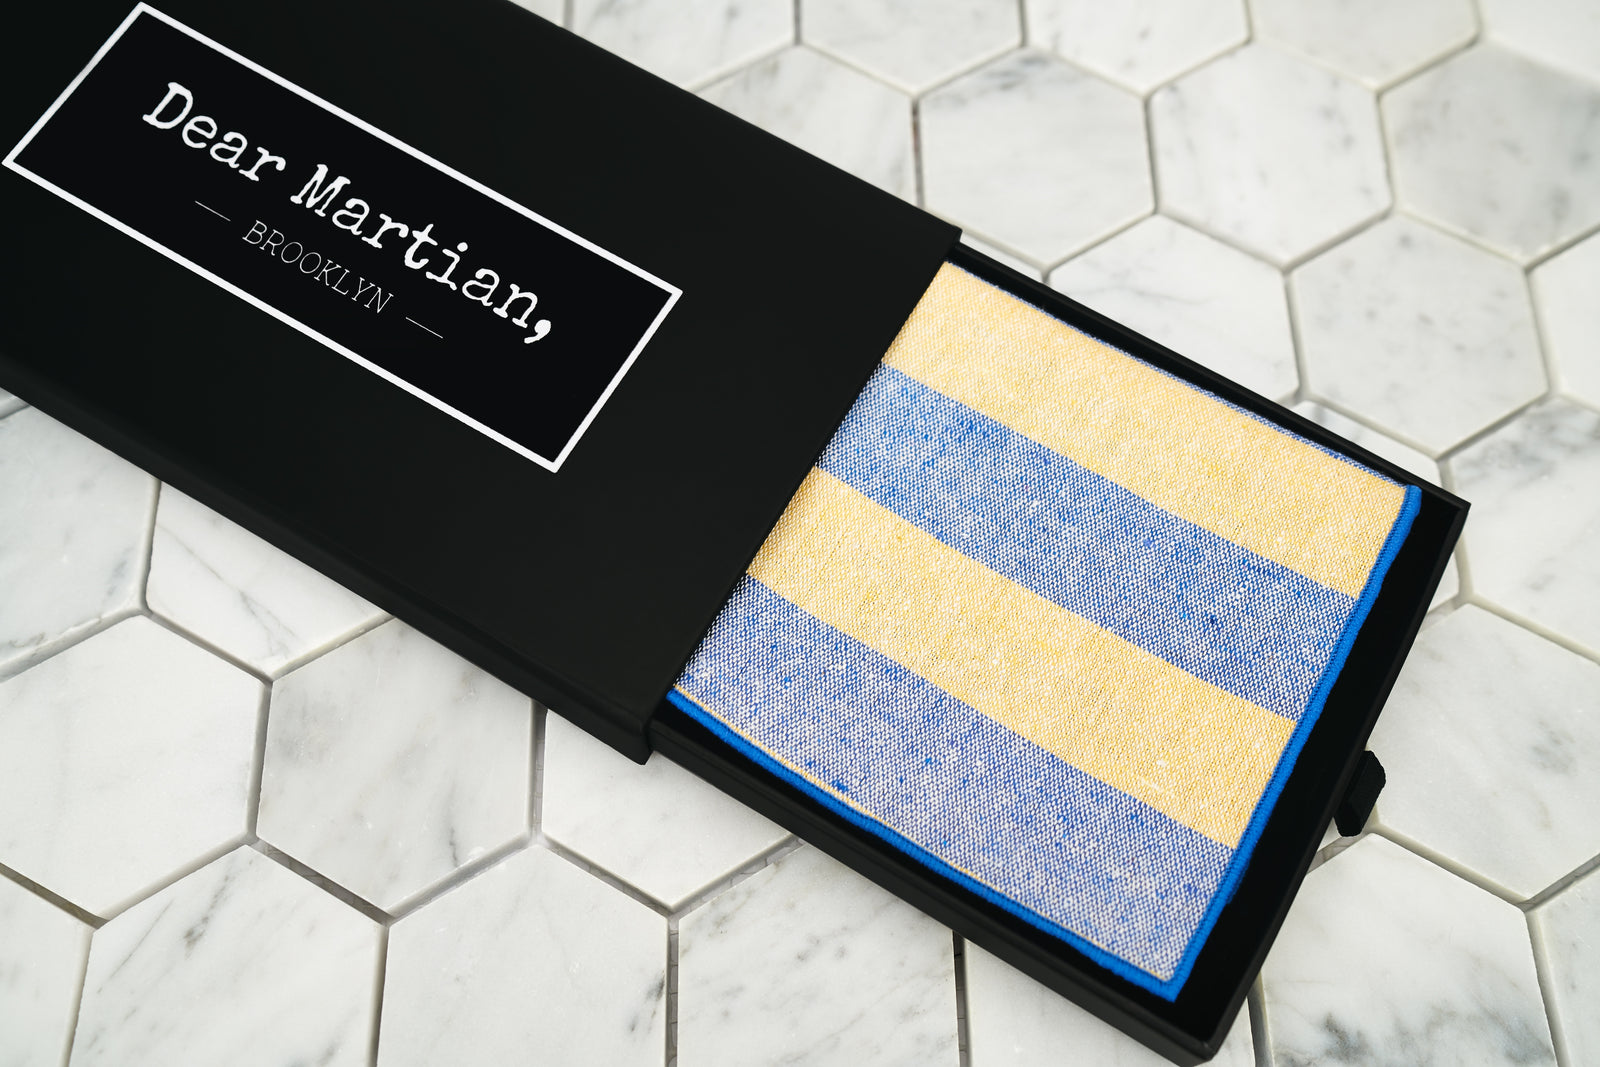 An image showing the Bookie yellow and blue striped pocketsquare. The matte black box features a pull out style with our Dear Martian, Brooklyn logo